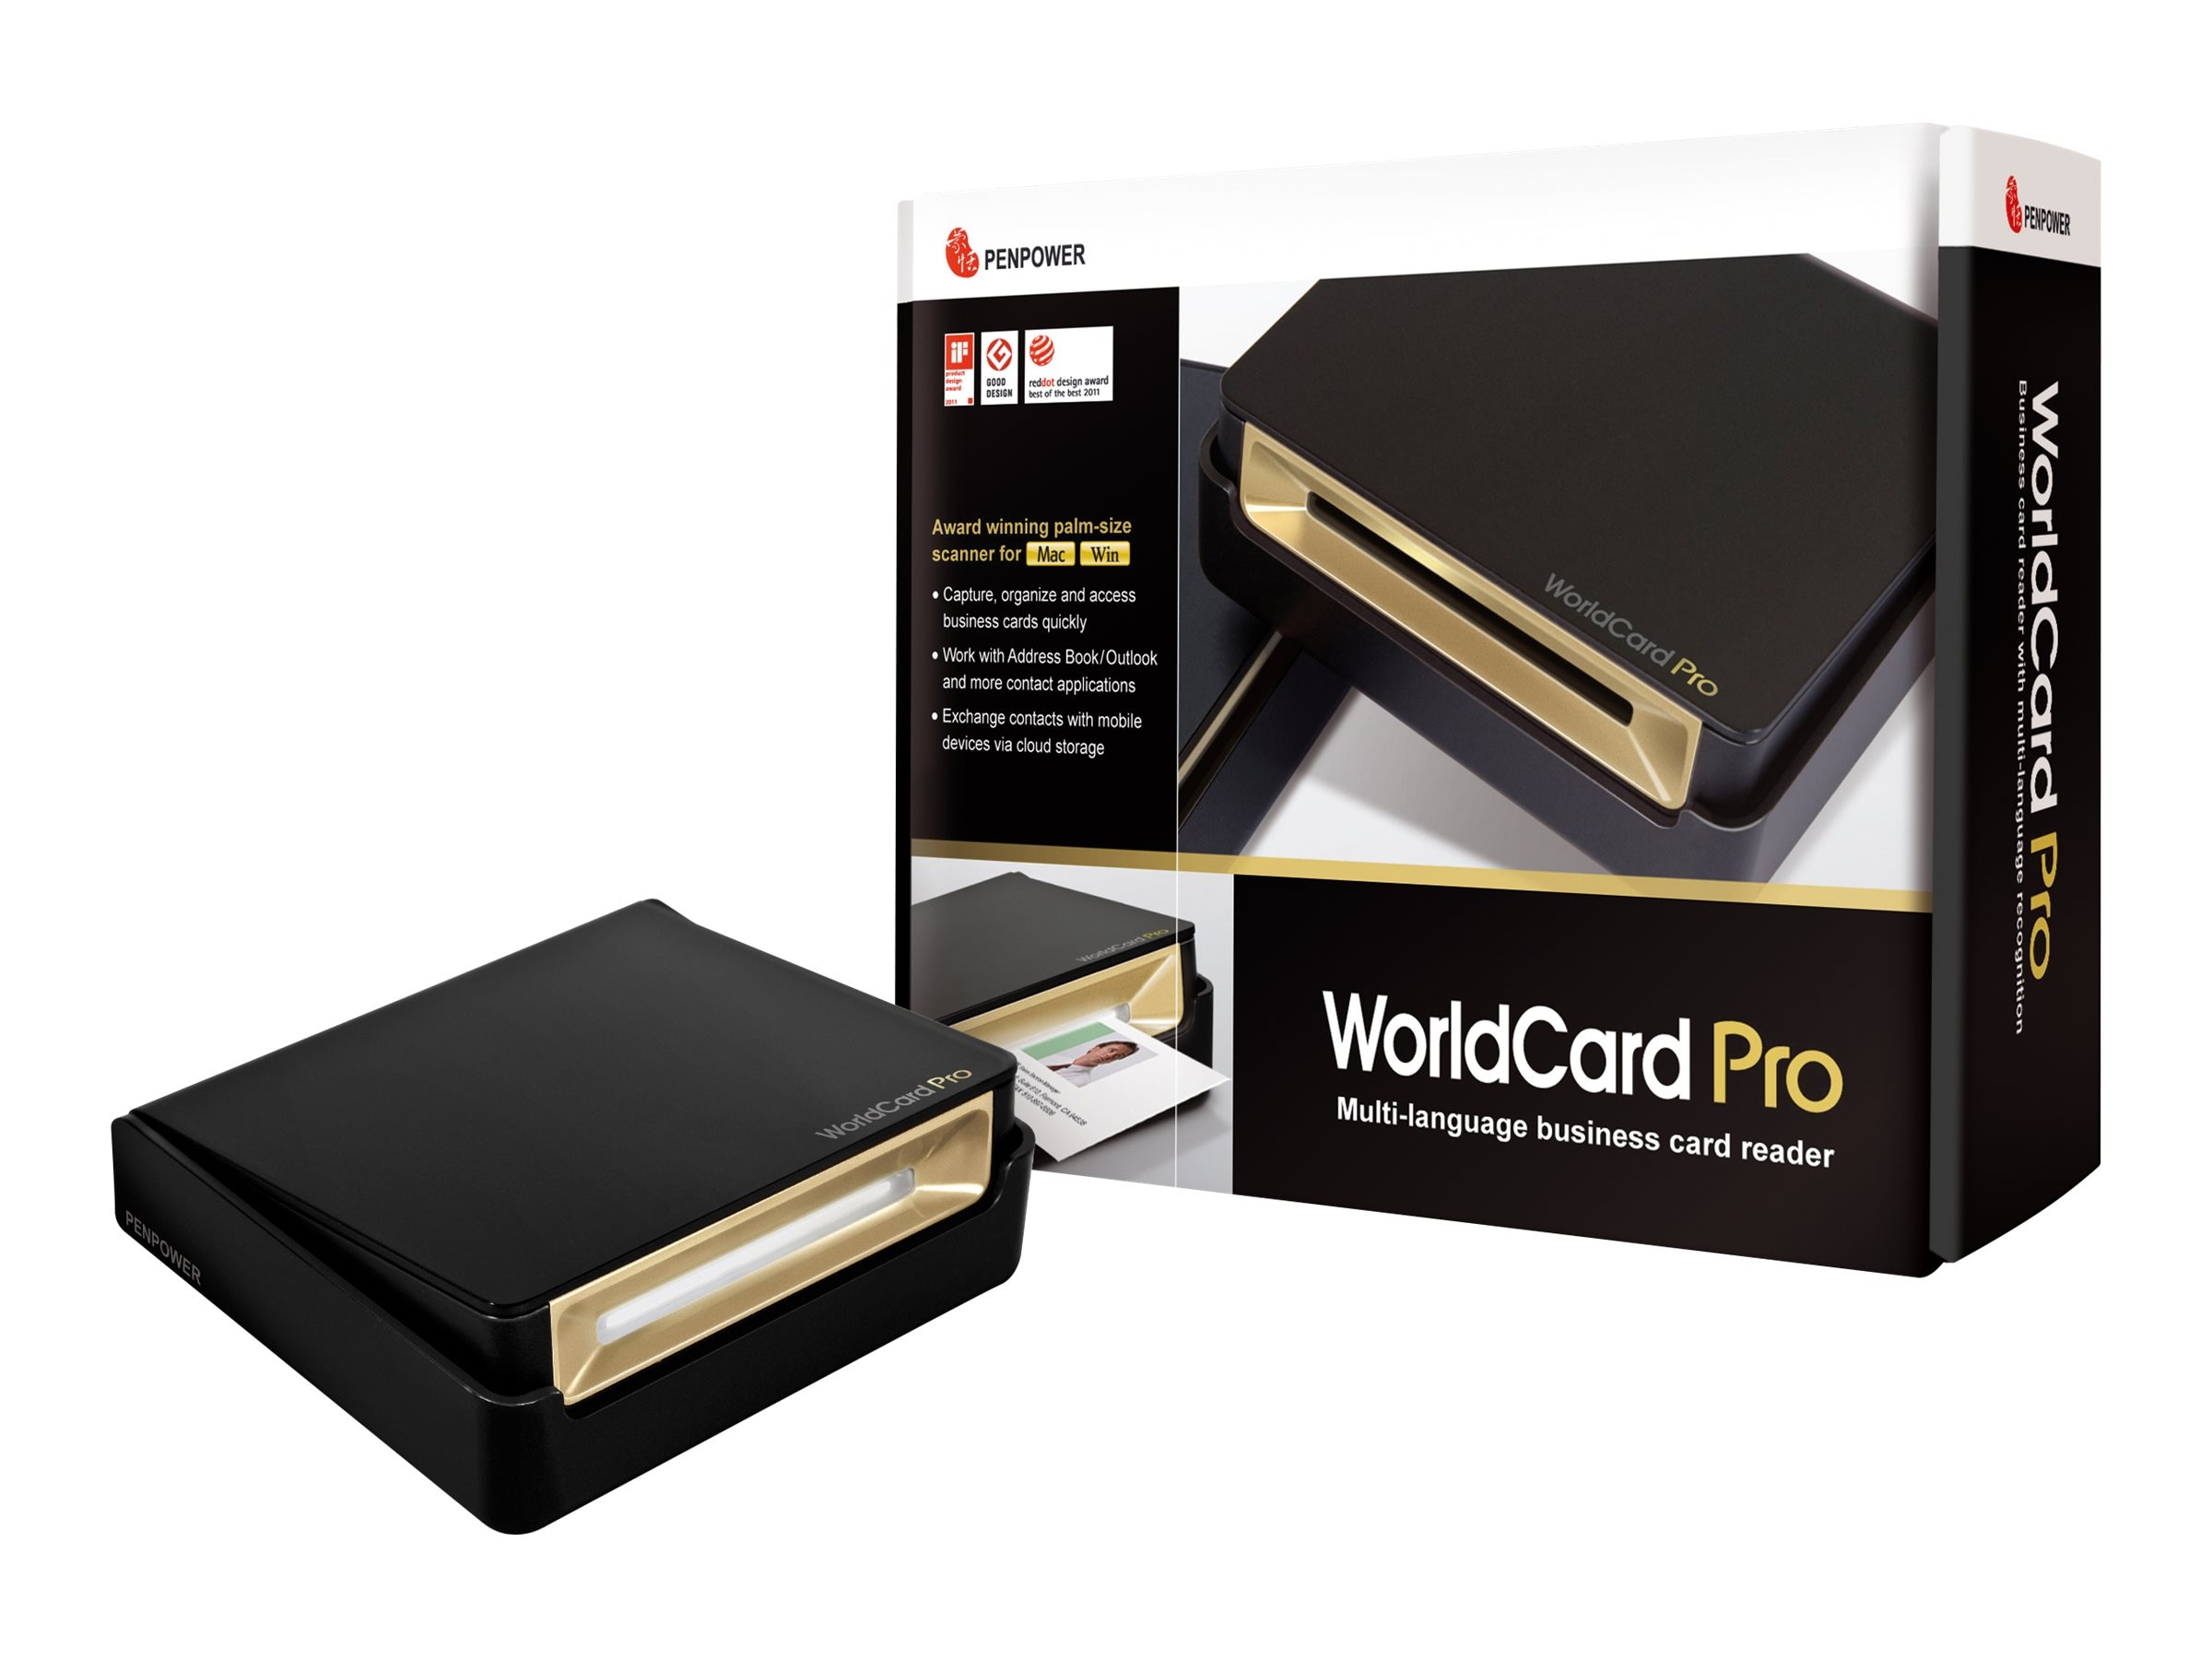 Penpower WorldCard Pro Card Scanner